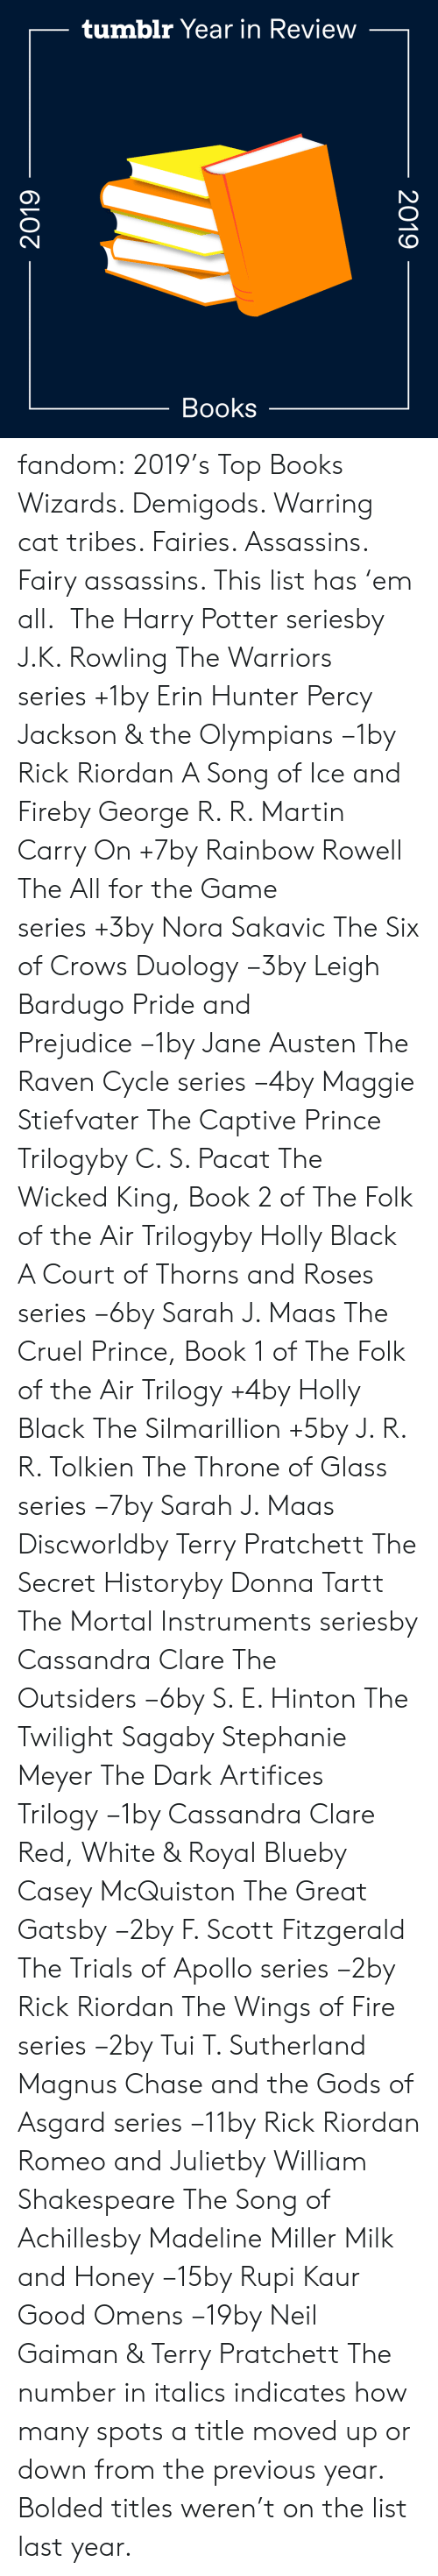 nora: tumblr Year in Review  Books  2019  2019 fandom:  2019's Top Books  Wizards. Demigods. Warring cat tribes. Fairies. Assassins. Fairy assassins. This list has 'em all.   The Harry Potter seriesby J.K. Rowling  The Warriors series +1by Erin Hunter  Percy Jackson & the Olympians −1by Rick Riordan  A Song of Ice and Fireby George R. R. Martin  Carry On +7by Rainbow Rowell  The All for the Game series +3by Nora Sakavic  The Six of Crows Duology −3by Leigh Bardugo  Pride and Prejudice −1by Jane Austen  The Raven Cycle series −4by Maggie Stiefvater  The Captive Prince Trilogyby C. S. Pacat  The Wicked King, Book 2 of The Folk of the Air Trilogyby Holly Black  A Court of Thorns and Roses series −6by Sarah J. Maas  The Cruel Prince, Book 1 of The Folk of the Air Trilogy +4by Holly Black  The Silmarillion +5by J. R. R. Tolkien  The Throne of Glass series −7by Sarah J. Maas  Discworldby Terry Pratchett  The Secret Historyby Donna Tartt  The Mortal Instruments seriesby Cassandra Clare  The Outsiders −6by S. E. Hinton  The Twilight Sagaby Stephanie Meyer  The Dark Artifices Trilogy −1by Cassandra Clare  Red, White & Royal Blueby Casey McQuiston  The Great Gatsby −2by F. Scott Fitzgerald  The Trials of Apollo series −2by Rick Riordan  The Wings of Fire series −2by Tui T. Sutherland  Magnus Chase and the Gods of Asgard series −11by Rick Riordan  Romeo and Julietby William Shakespeare  The Song of Achillesby Madeline Miller  Milk and Honey −15by Rupi Kaur  Good Omens −19by Neil Gaiman & Terry Pratchett The number in italics indicates how many spots a title moved up or down from the previous year. Bolded titles weren't on the list last year.